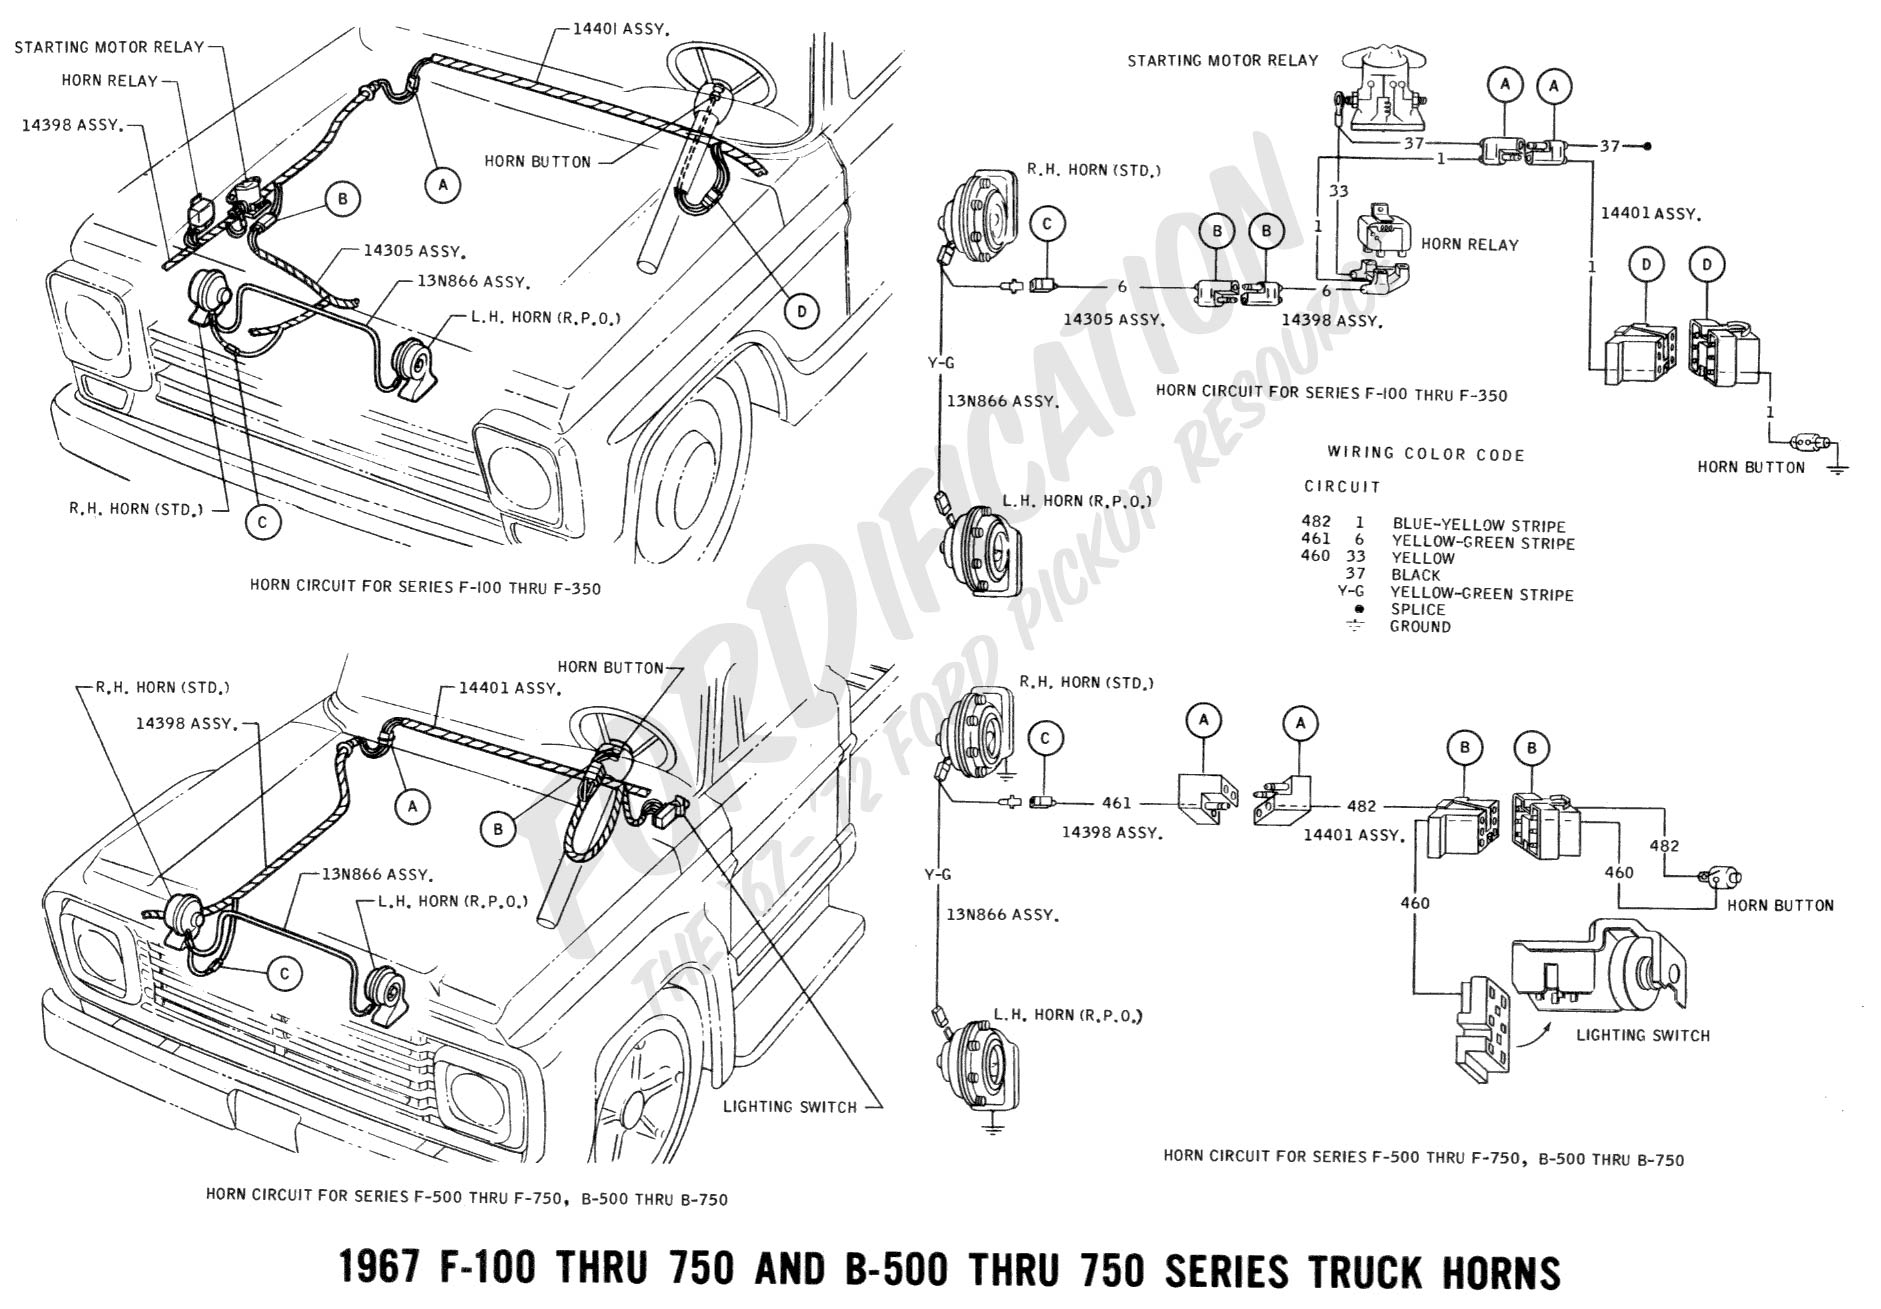 [DIAGRAM_09CH]  1972 Ford F100 Wiring Schematics 1998 Buick Park Avenue Wiring Diagram -  syintax.the-damboel-12.florimunt.fr | 1966 Ford F100 Engine Wiring Diagram Free Picture |  | Wiring Diagram and Schematics